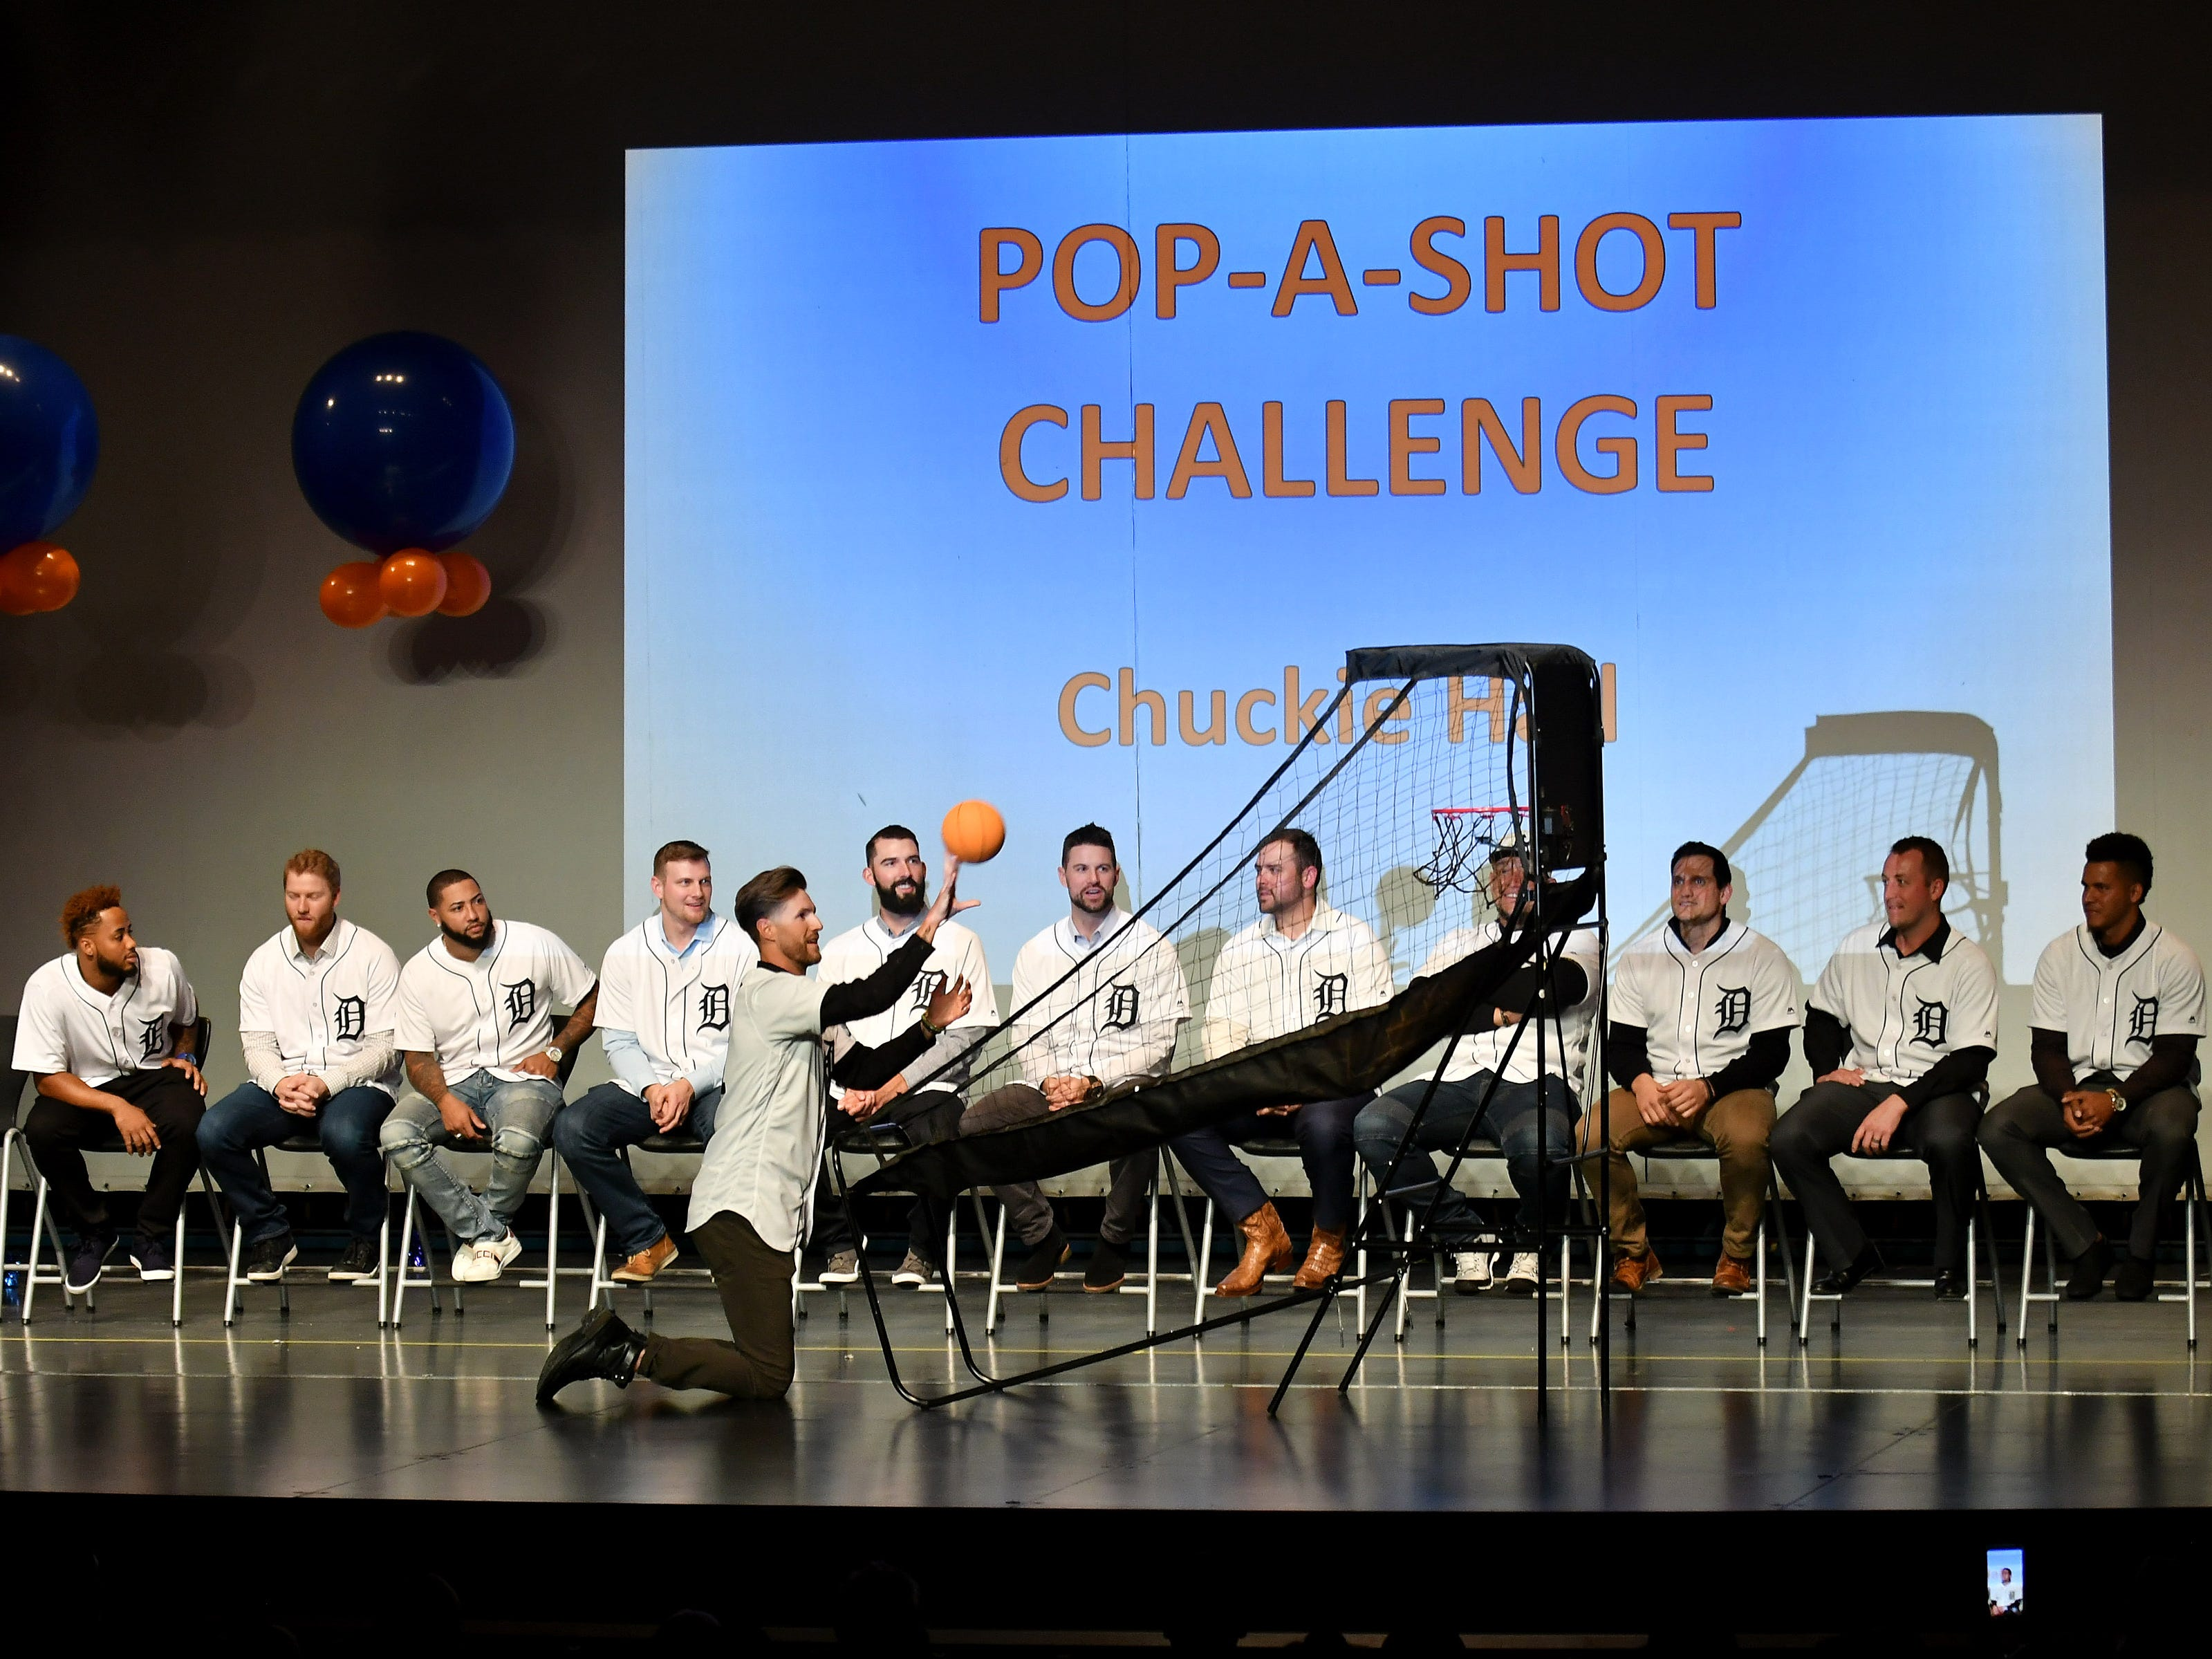 Tigers pitcher Shane Greene competes in a pop-a-shot challenge at a kids rally at Novi High School.